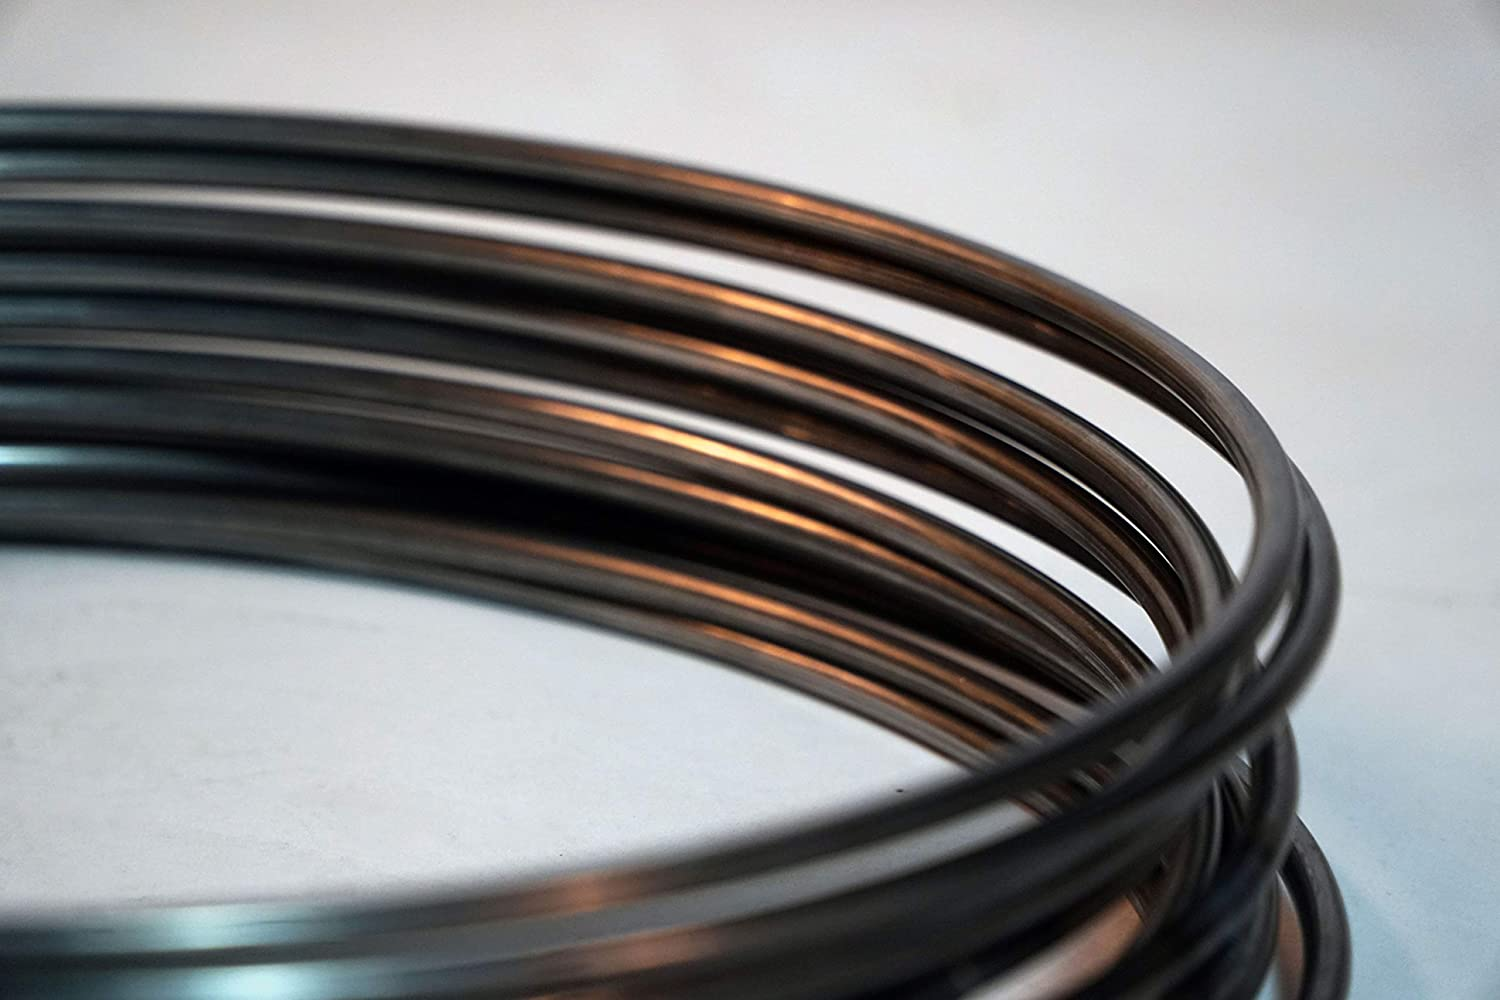 1//4 Thickness Lot of 10 10 Large Steel Rings for Arts /& Crafts Projects